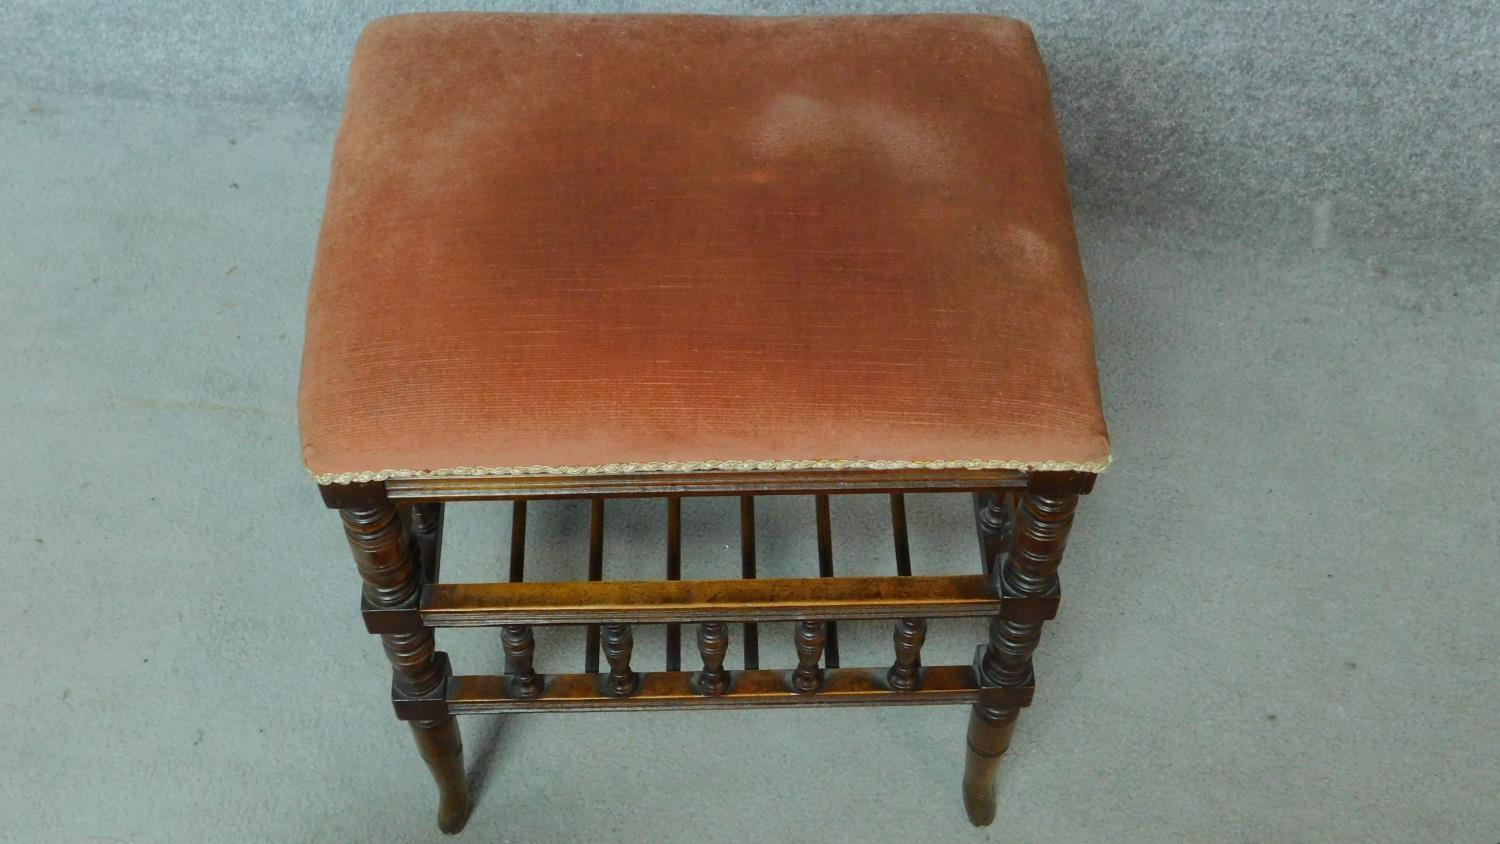 A 19th century walnut piano stool with fitted undertier for sheet music. H.55 W.46 D.36cm - Image 3 of 6